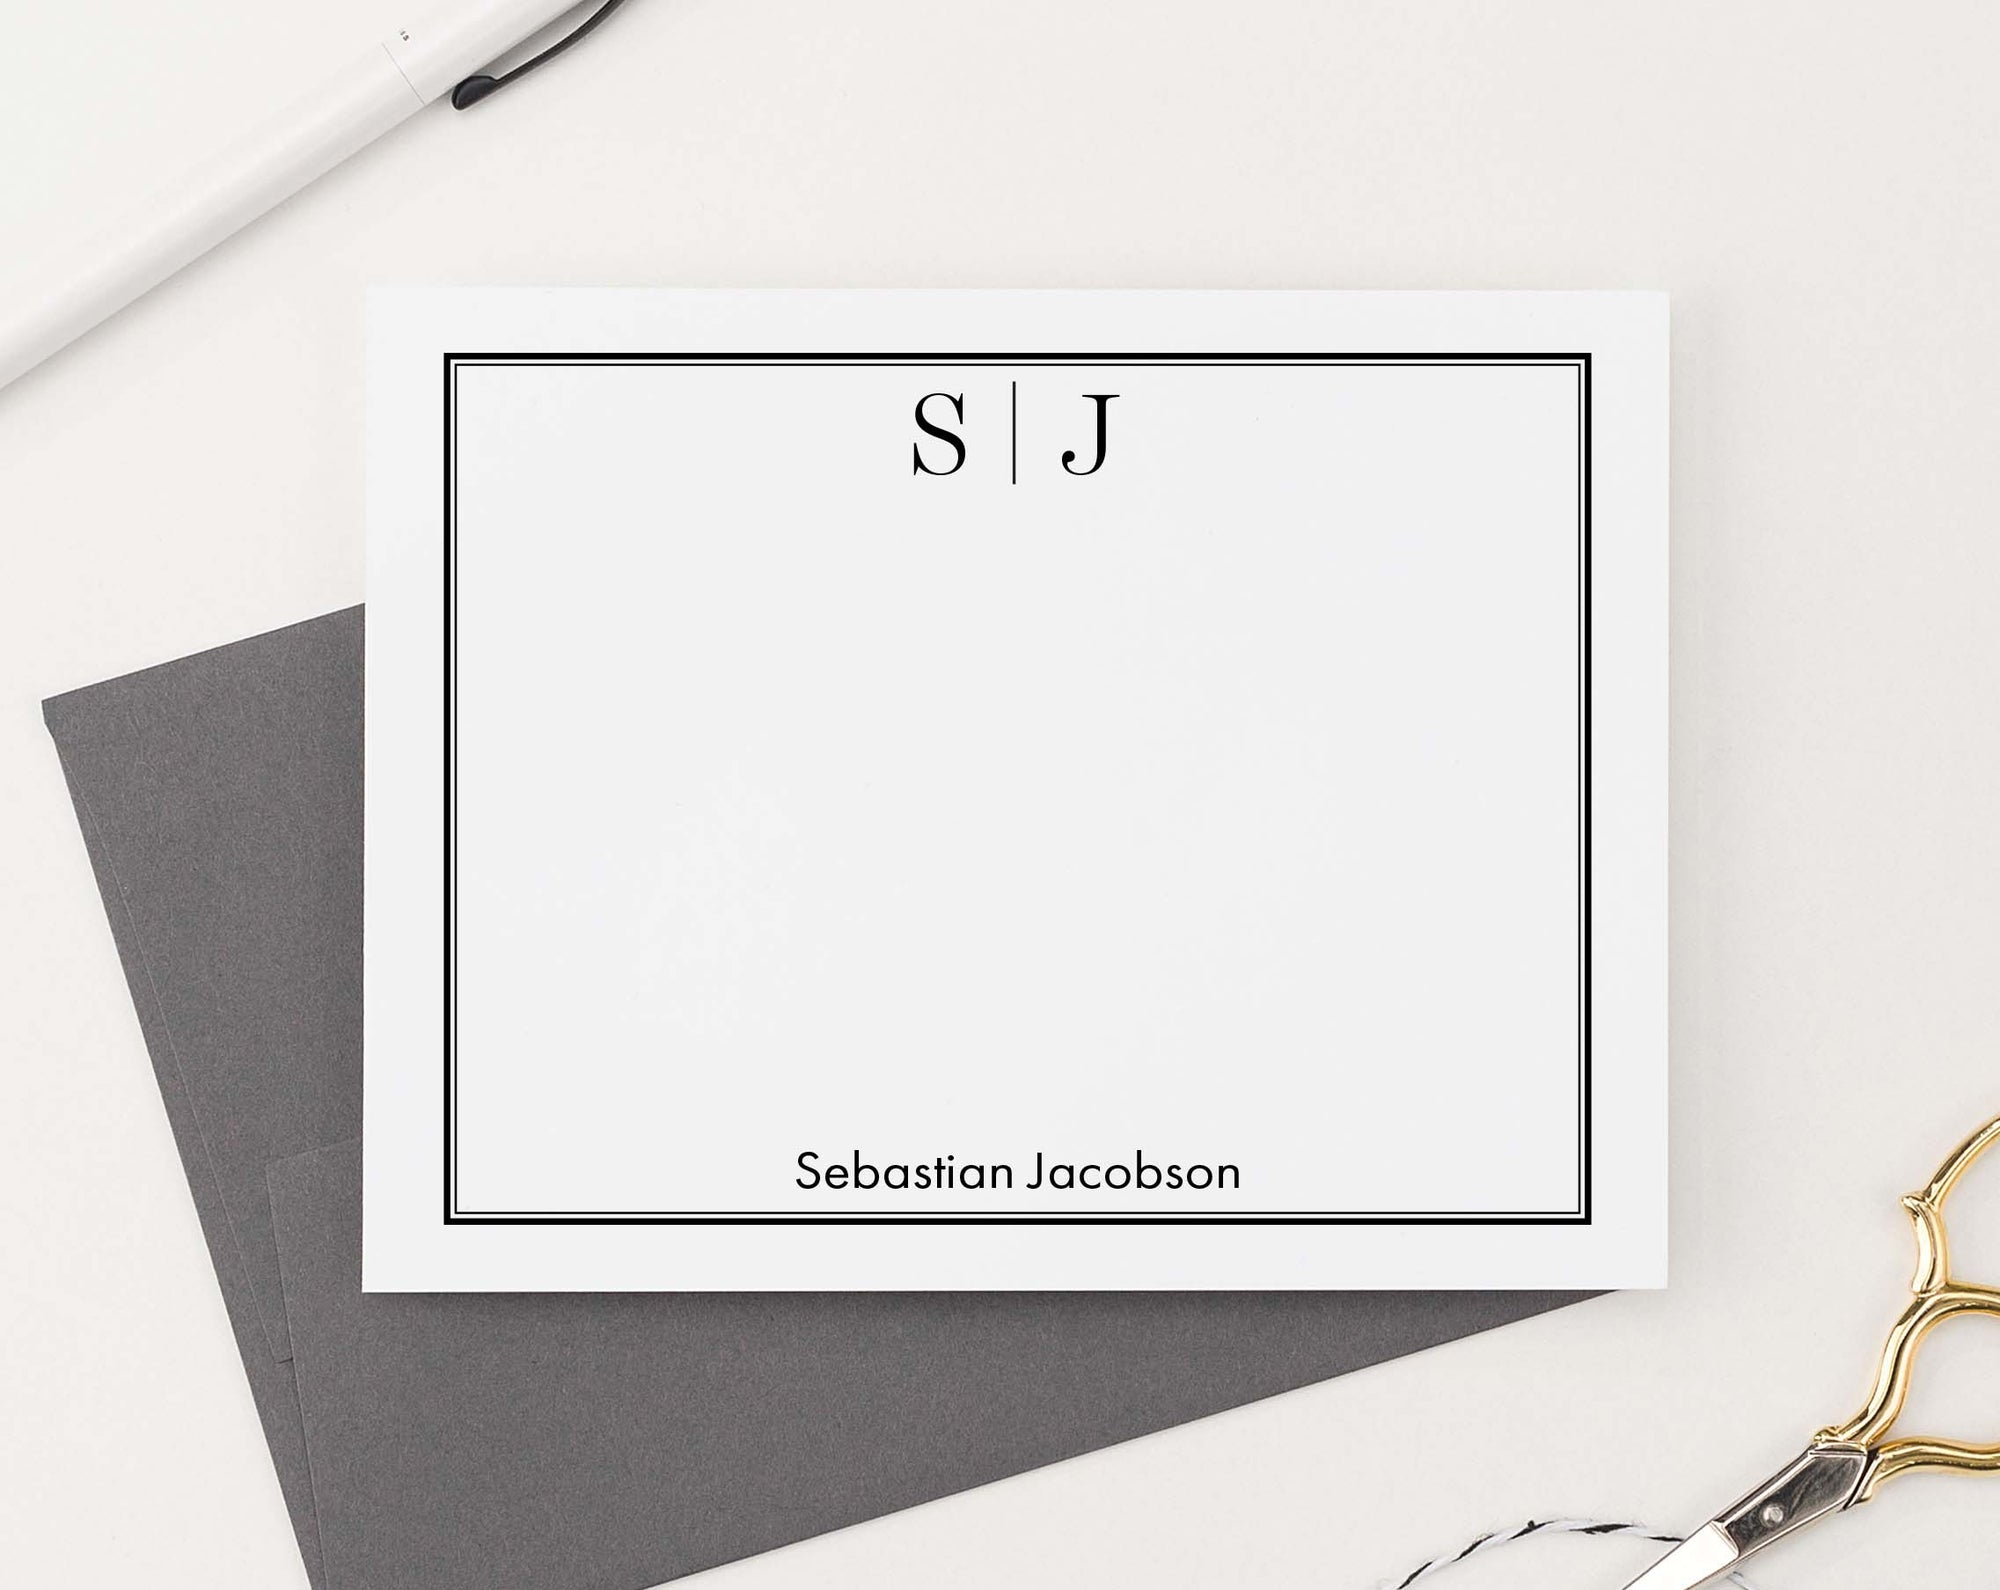 MS051 professional monogramed personalized stationery with classic border 2nd business men women